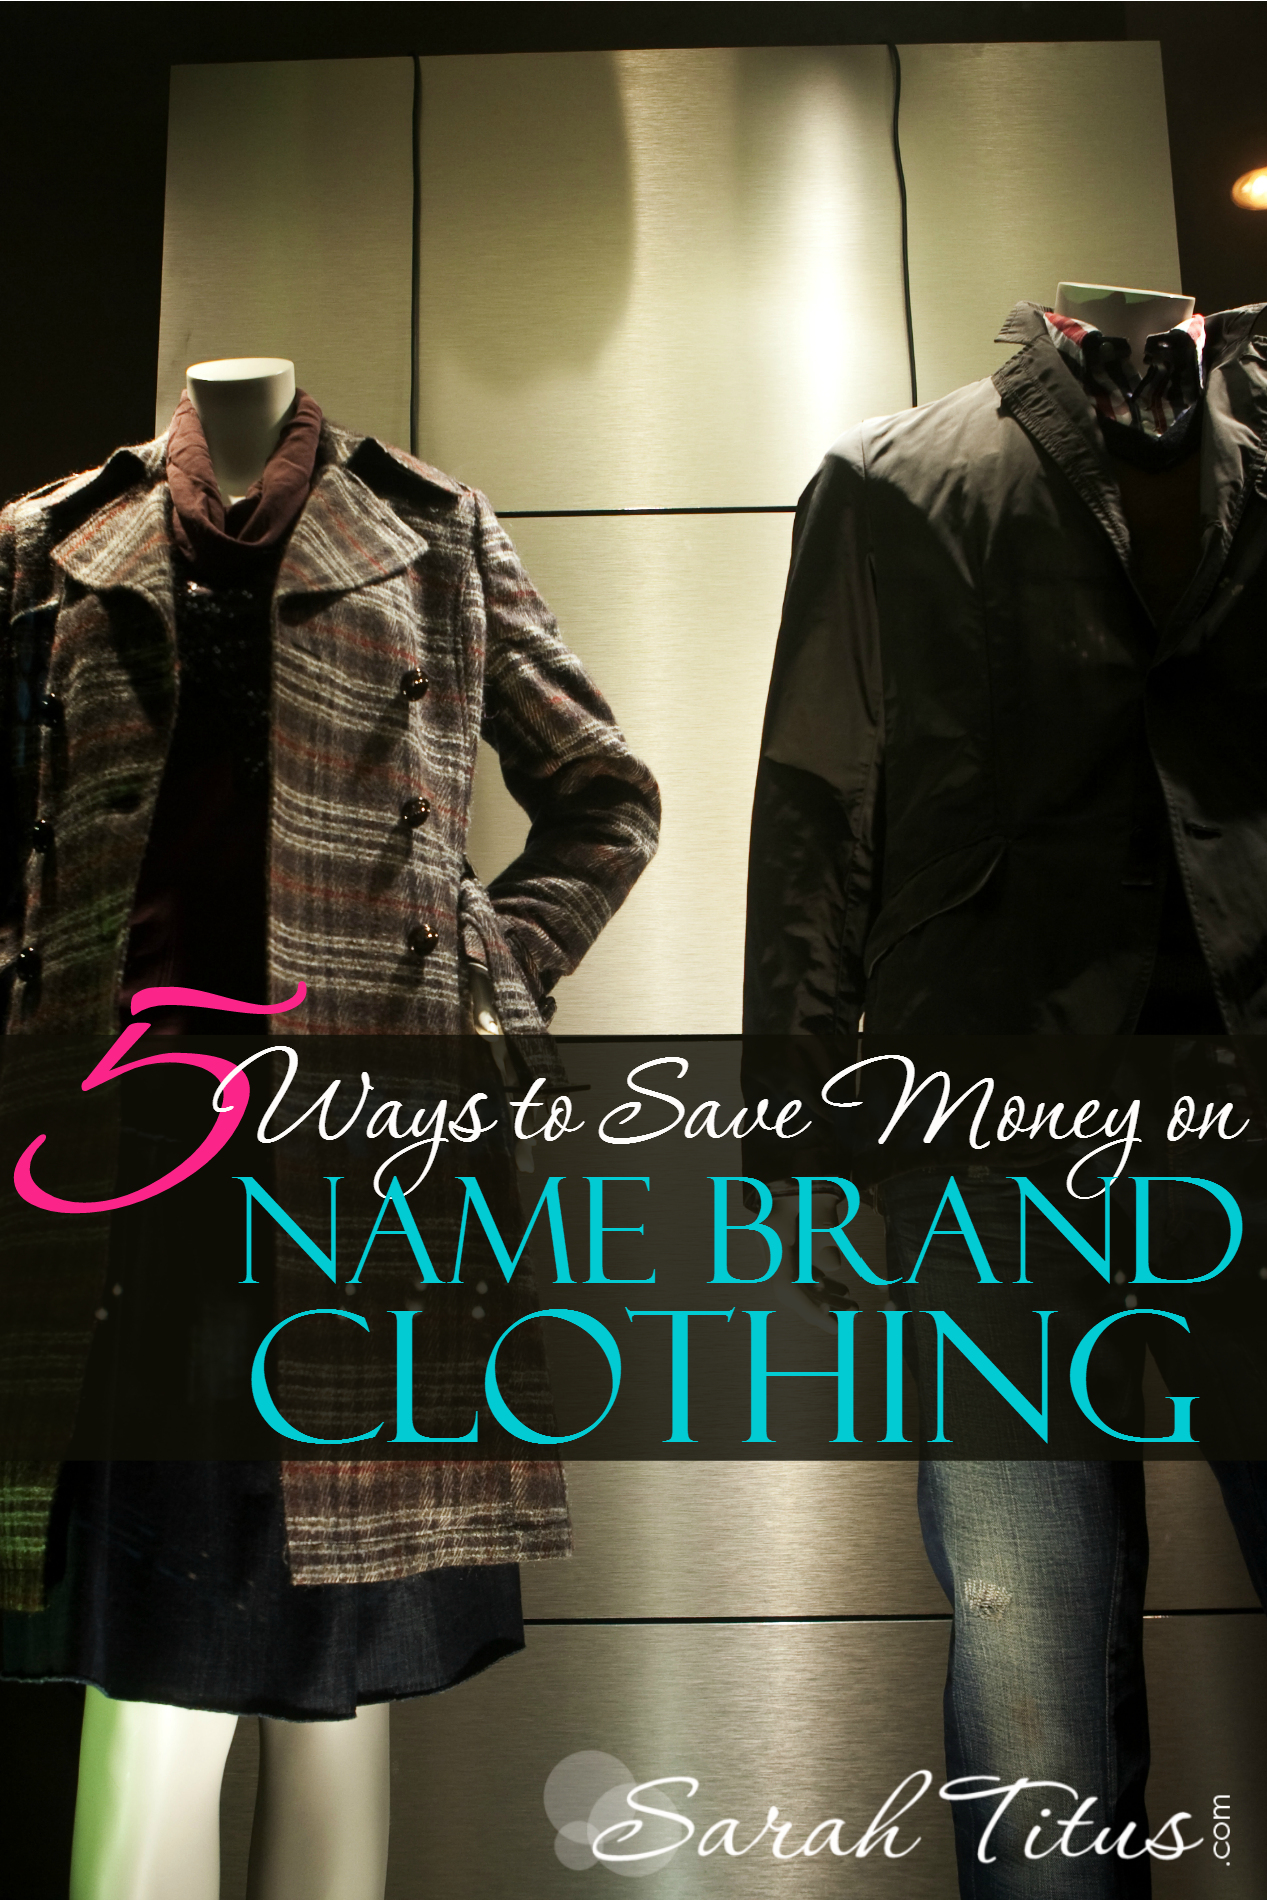 I'm a quality girl, so what I buy is usually brand name, but I don't want to spend a fortune on the finer things in life either. Fortunately, you don't have to! Here are 5 ways to save money on brand name clothing.